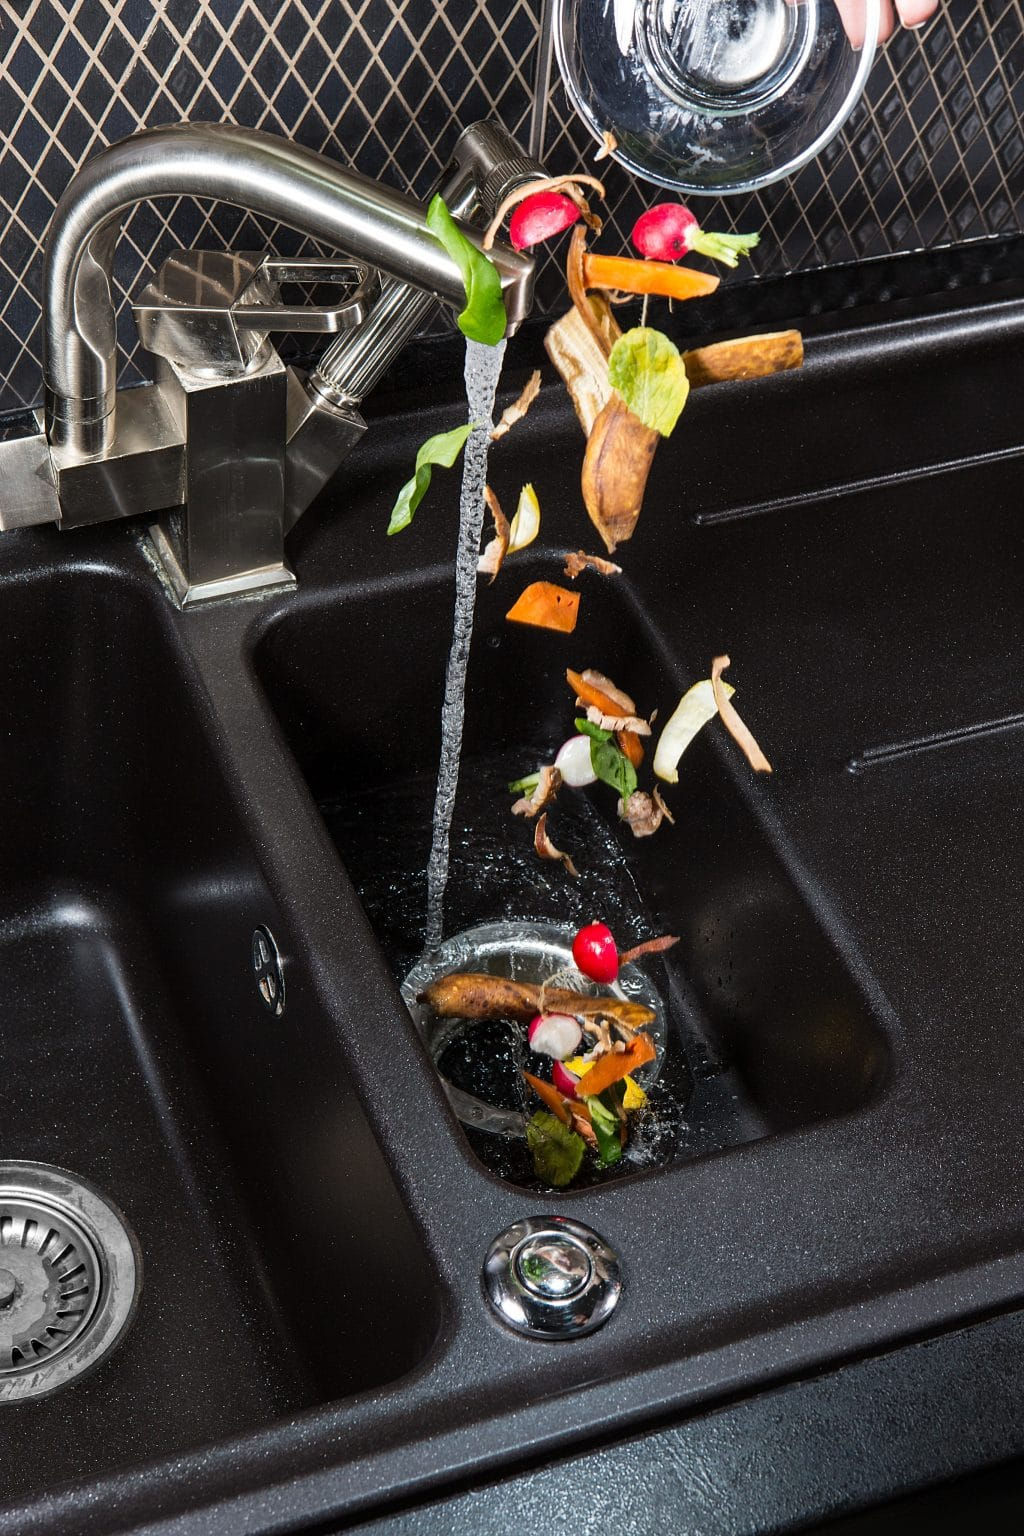 food material being dropped out of a metal bowl in to a sink garbage disposal